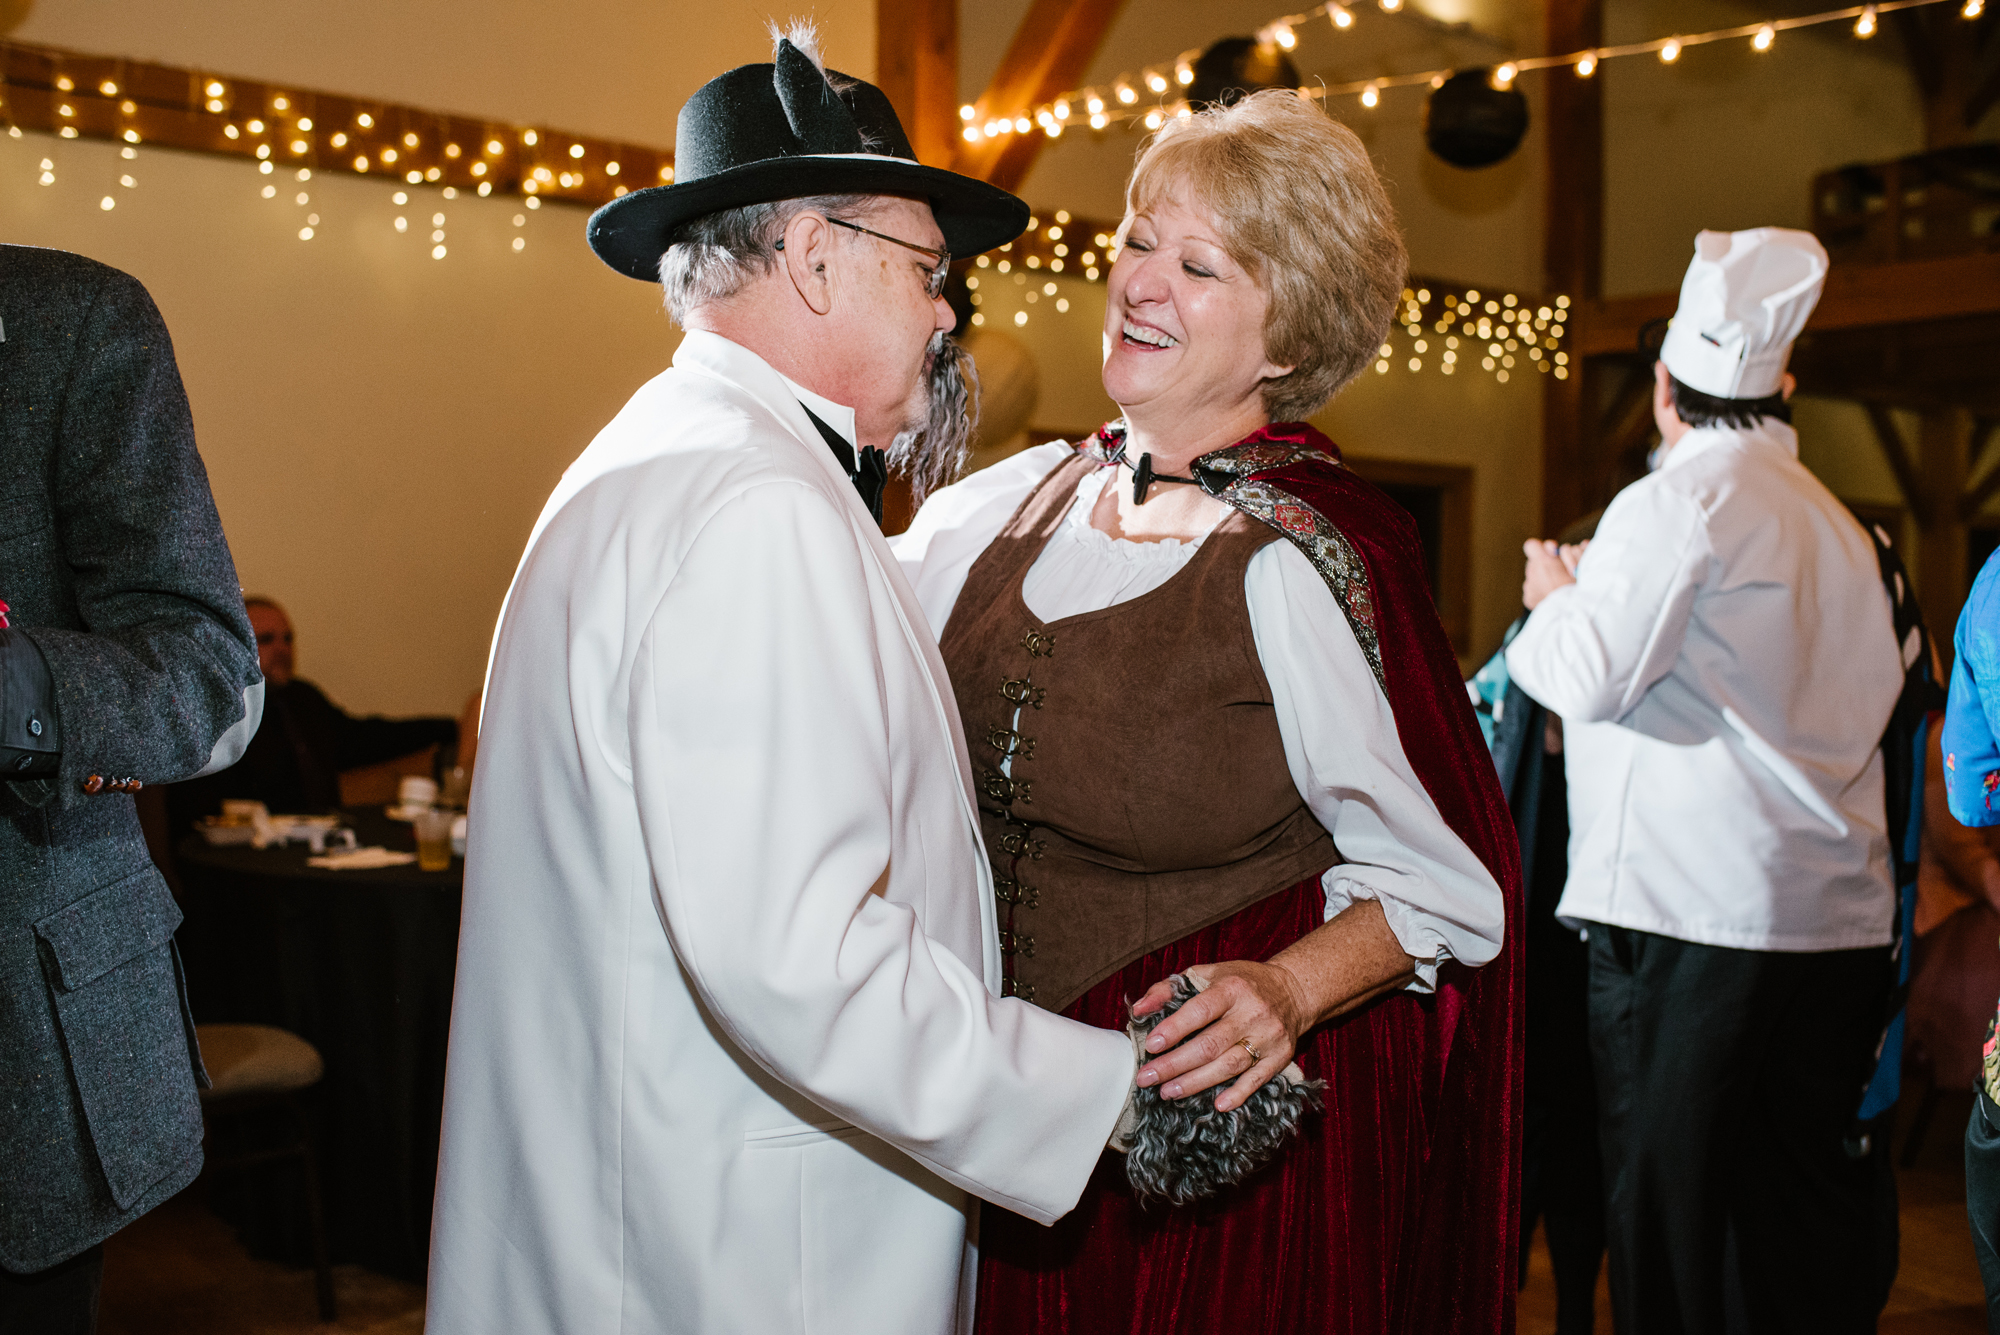 ann-arbor-michigan-halloween-themed-wedding-dancing-photos (2).jpg